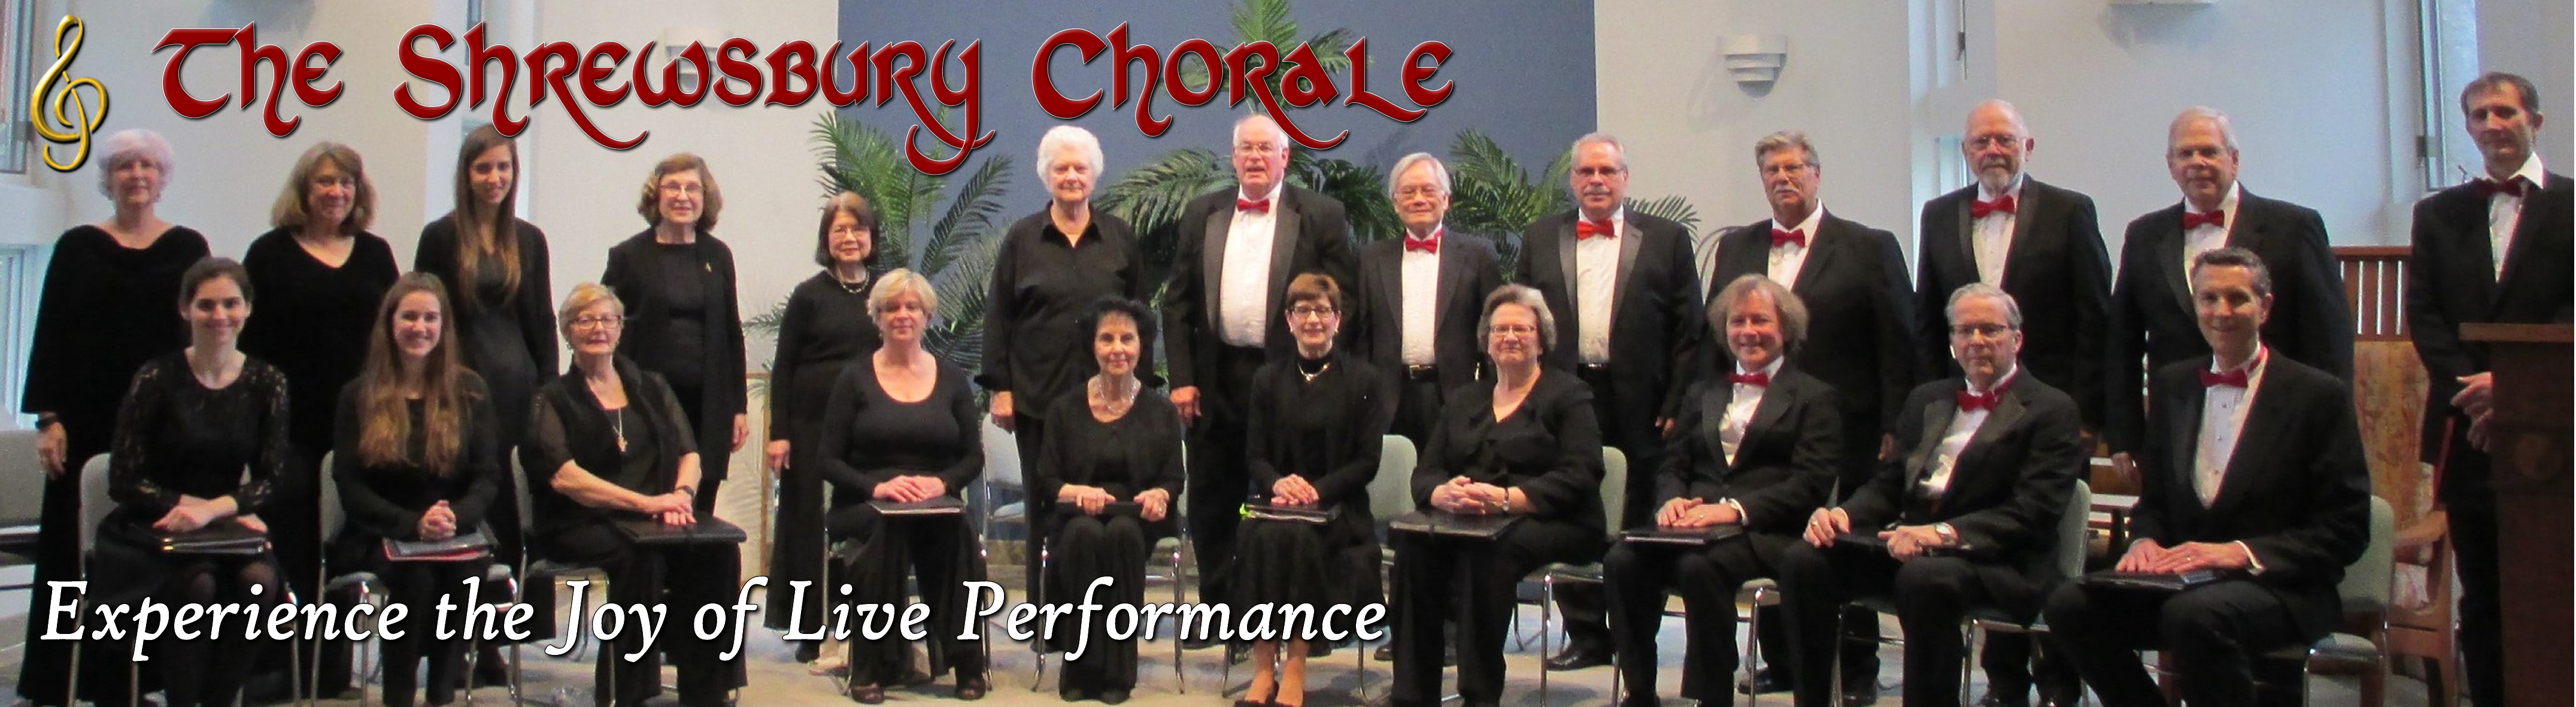 The Shrewsbury Chorale